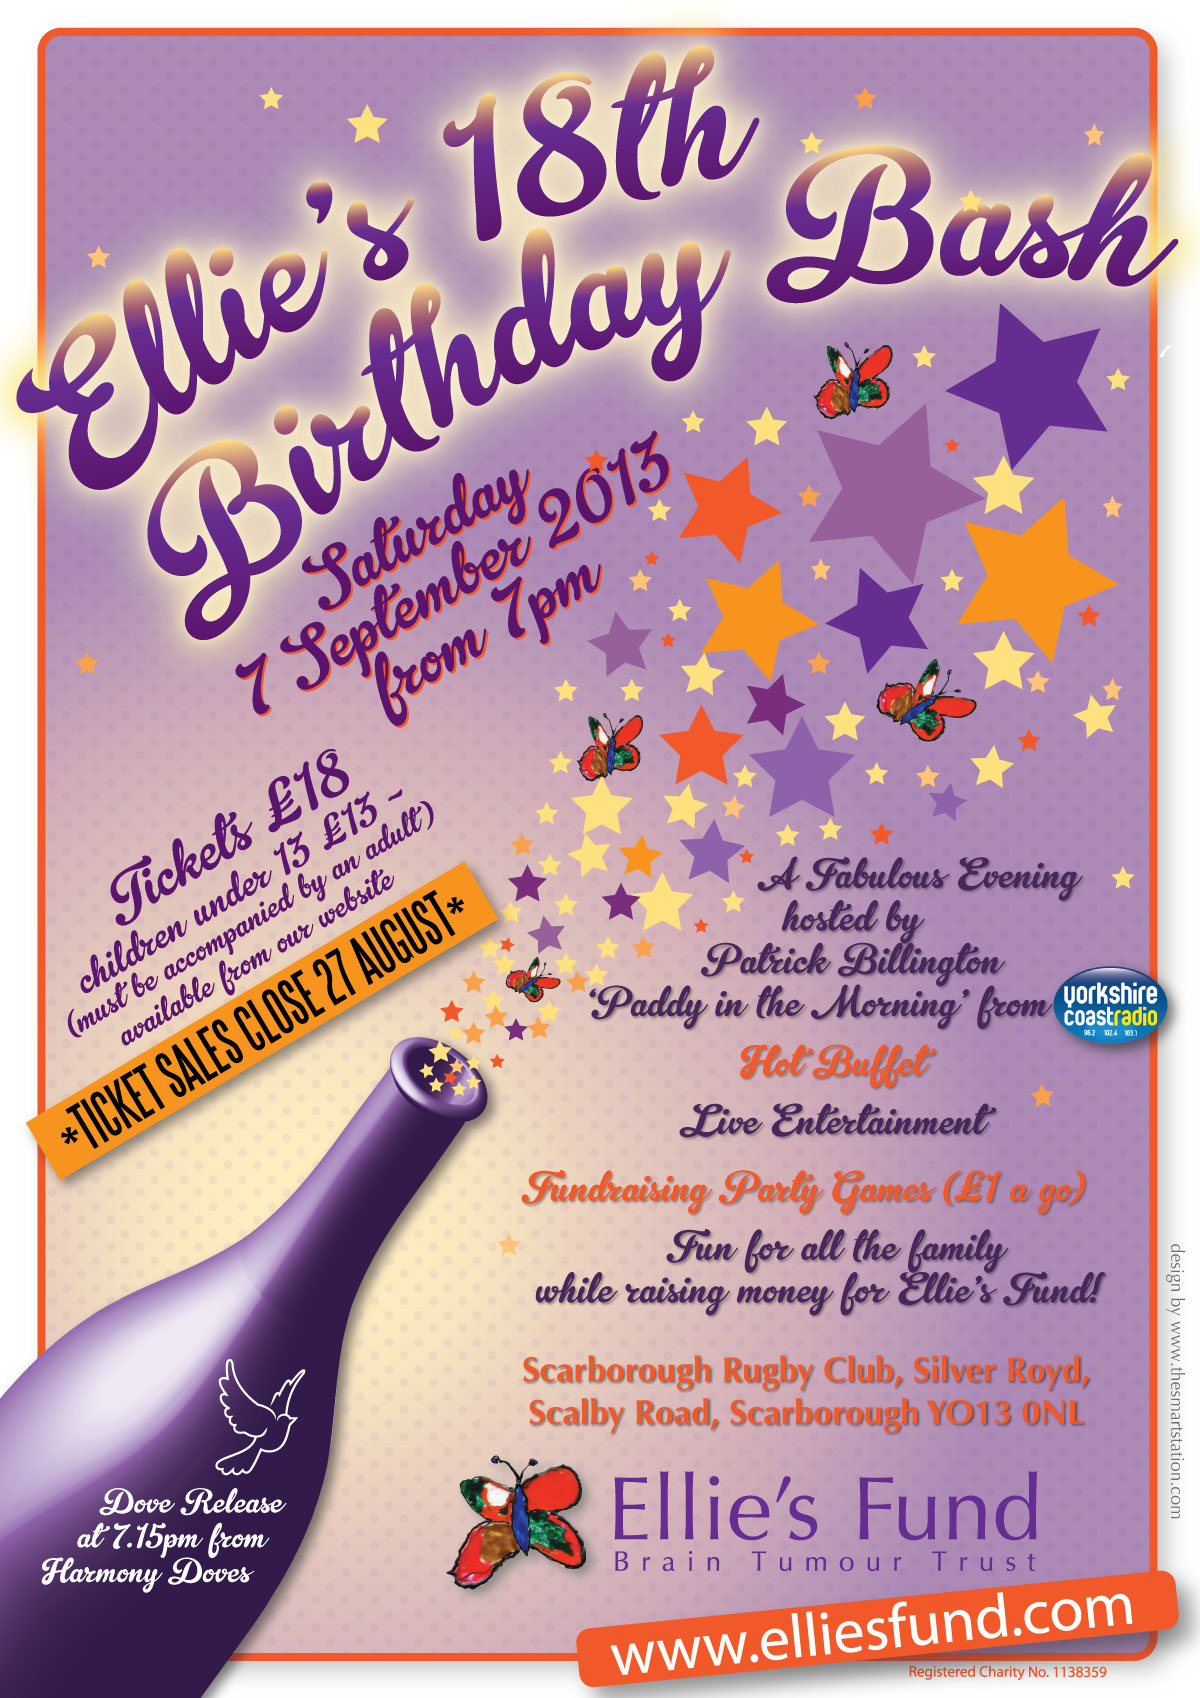 Ellie's Fund 18th Birthday poster designed by Gaynor Carr at The Smart Station